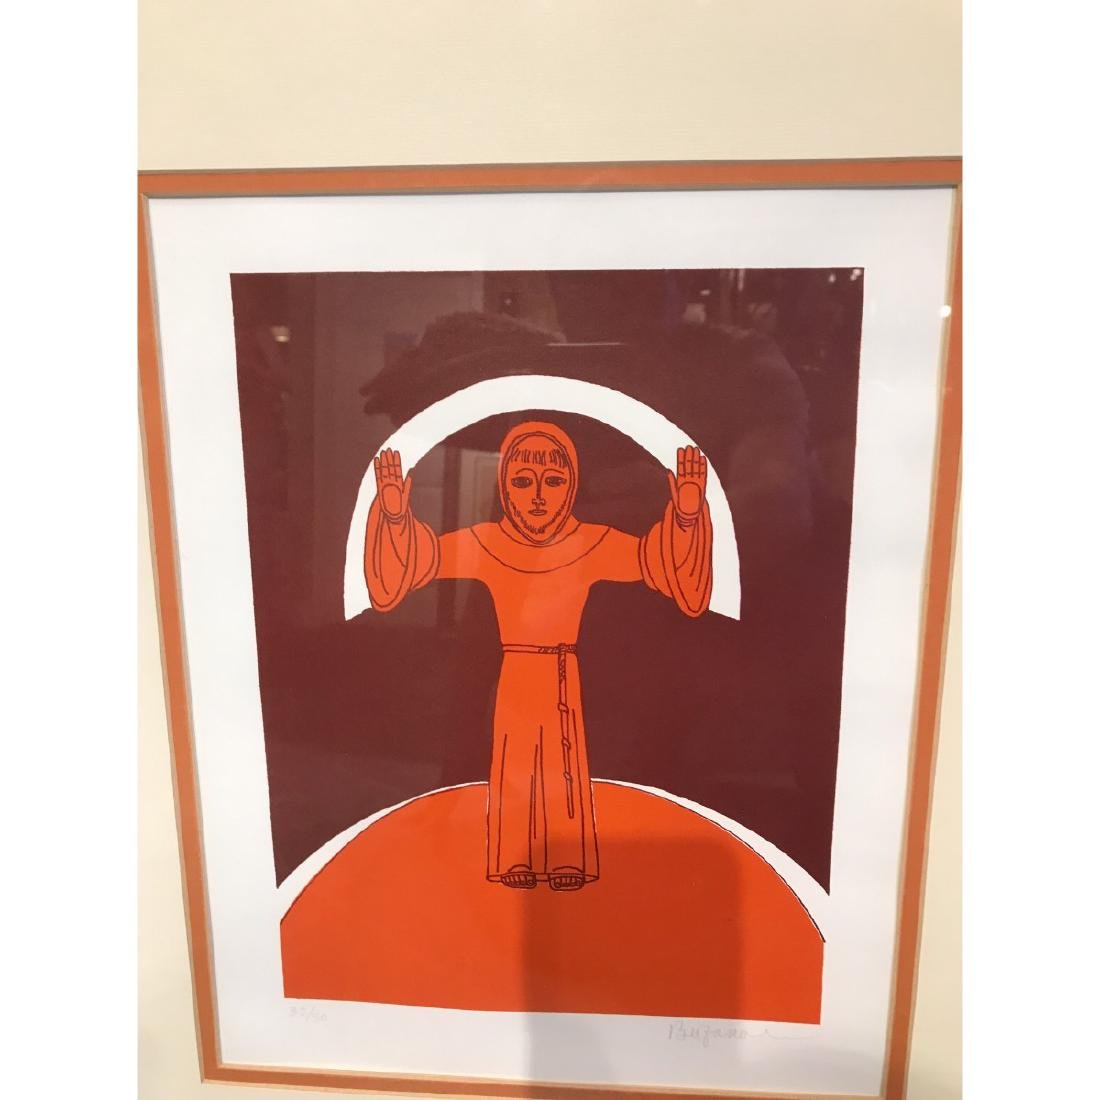 Limited Edition Print of a Monk by Bu Fano, Randolph - 2